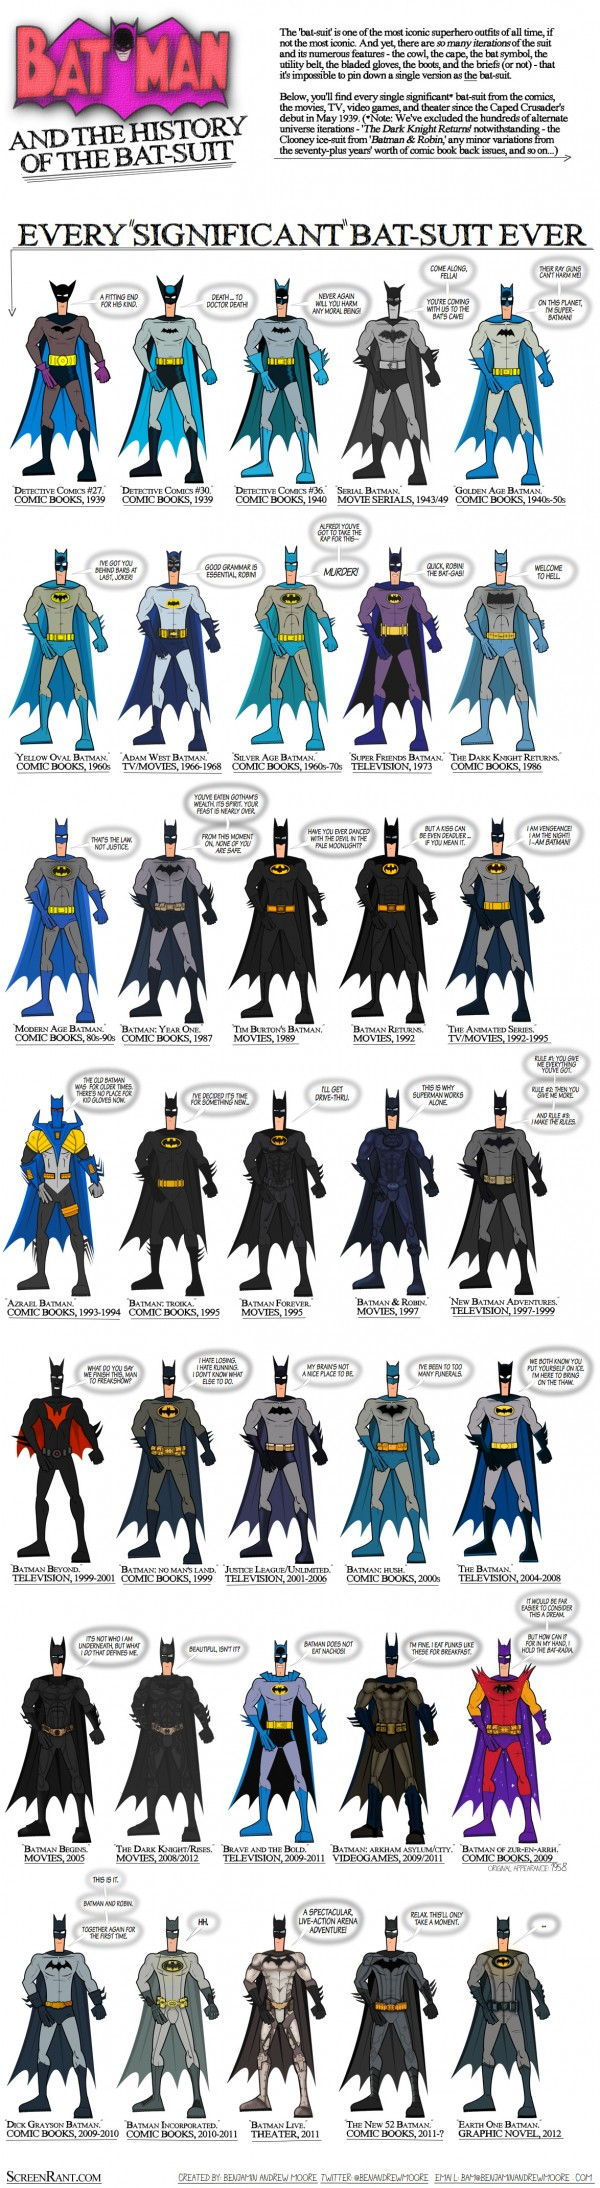 Batman-suit-history-infographic-3